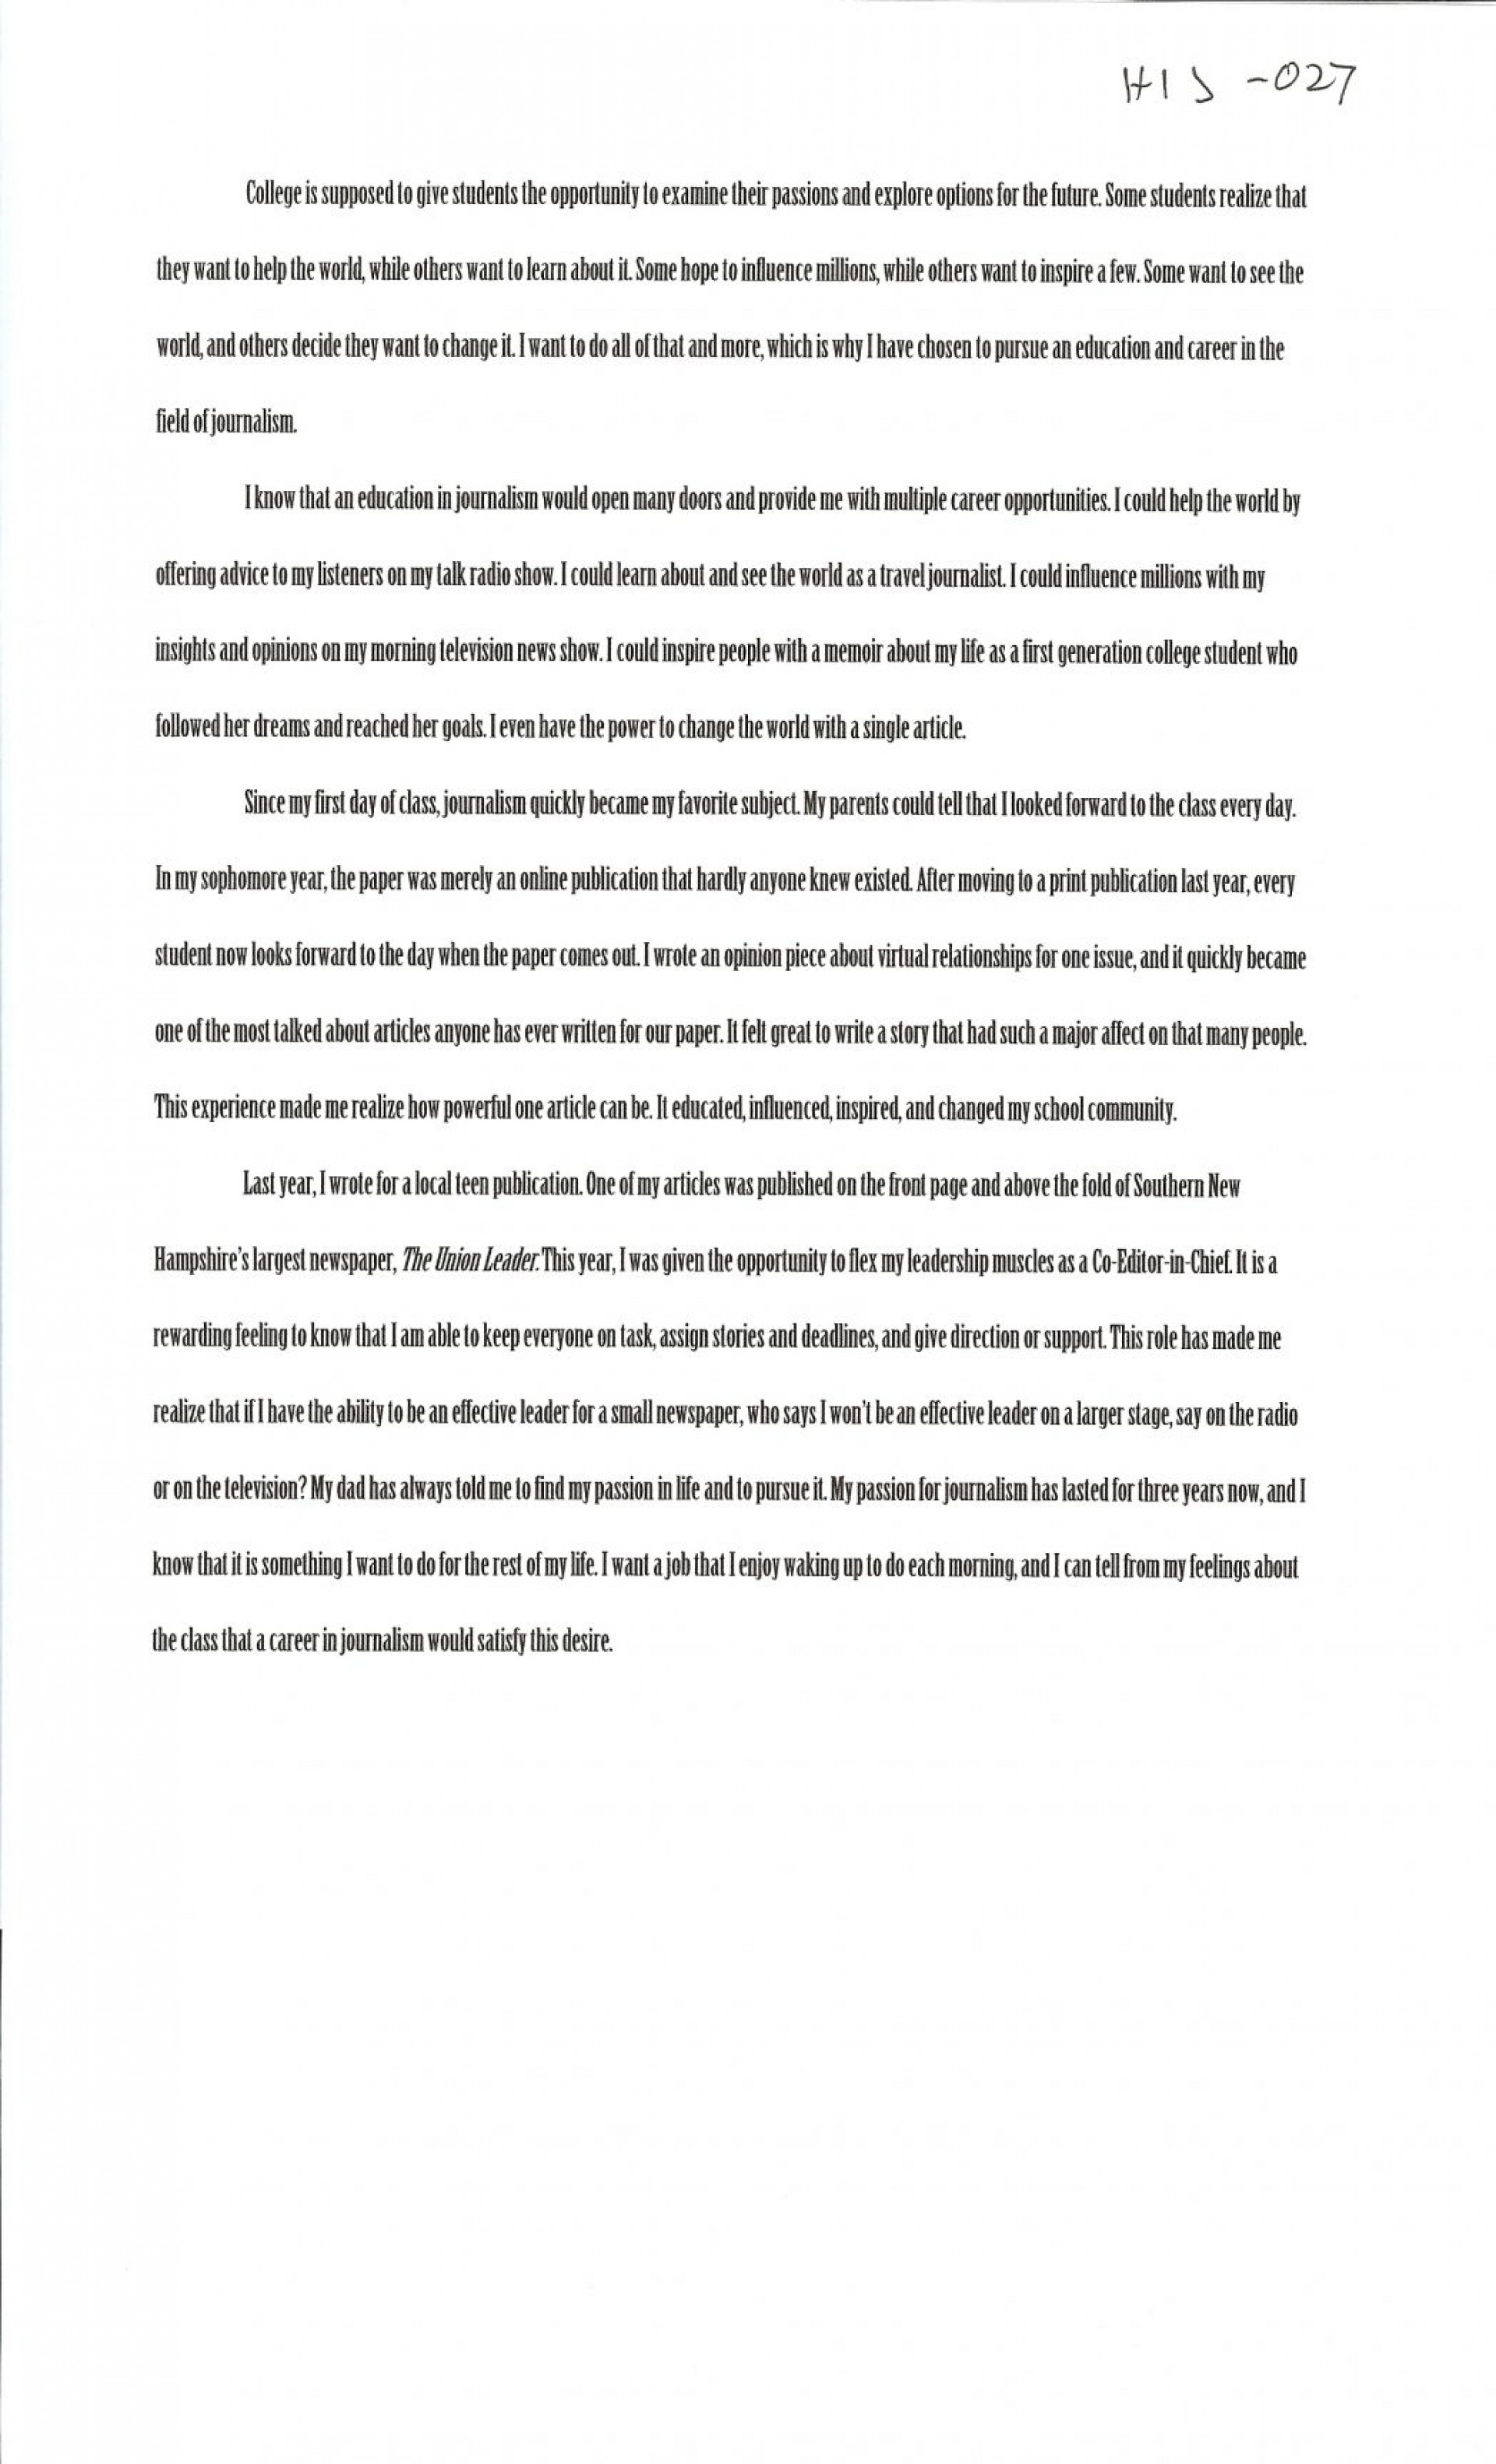 005 Free Argumentative Essay Example The Value Of College Education For Scholarship Tuition Alexa Serrecchia Stunning Topics Examples Middle School On Obesity 1920